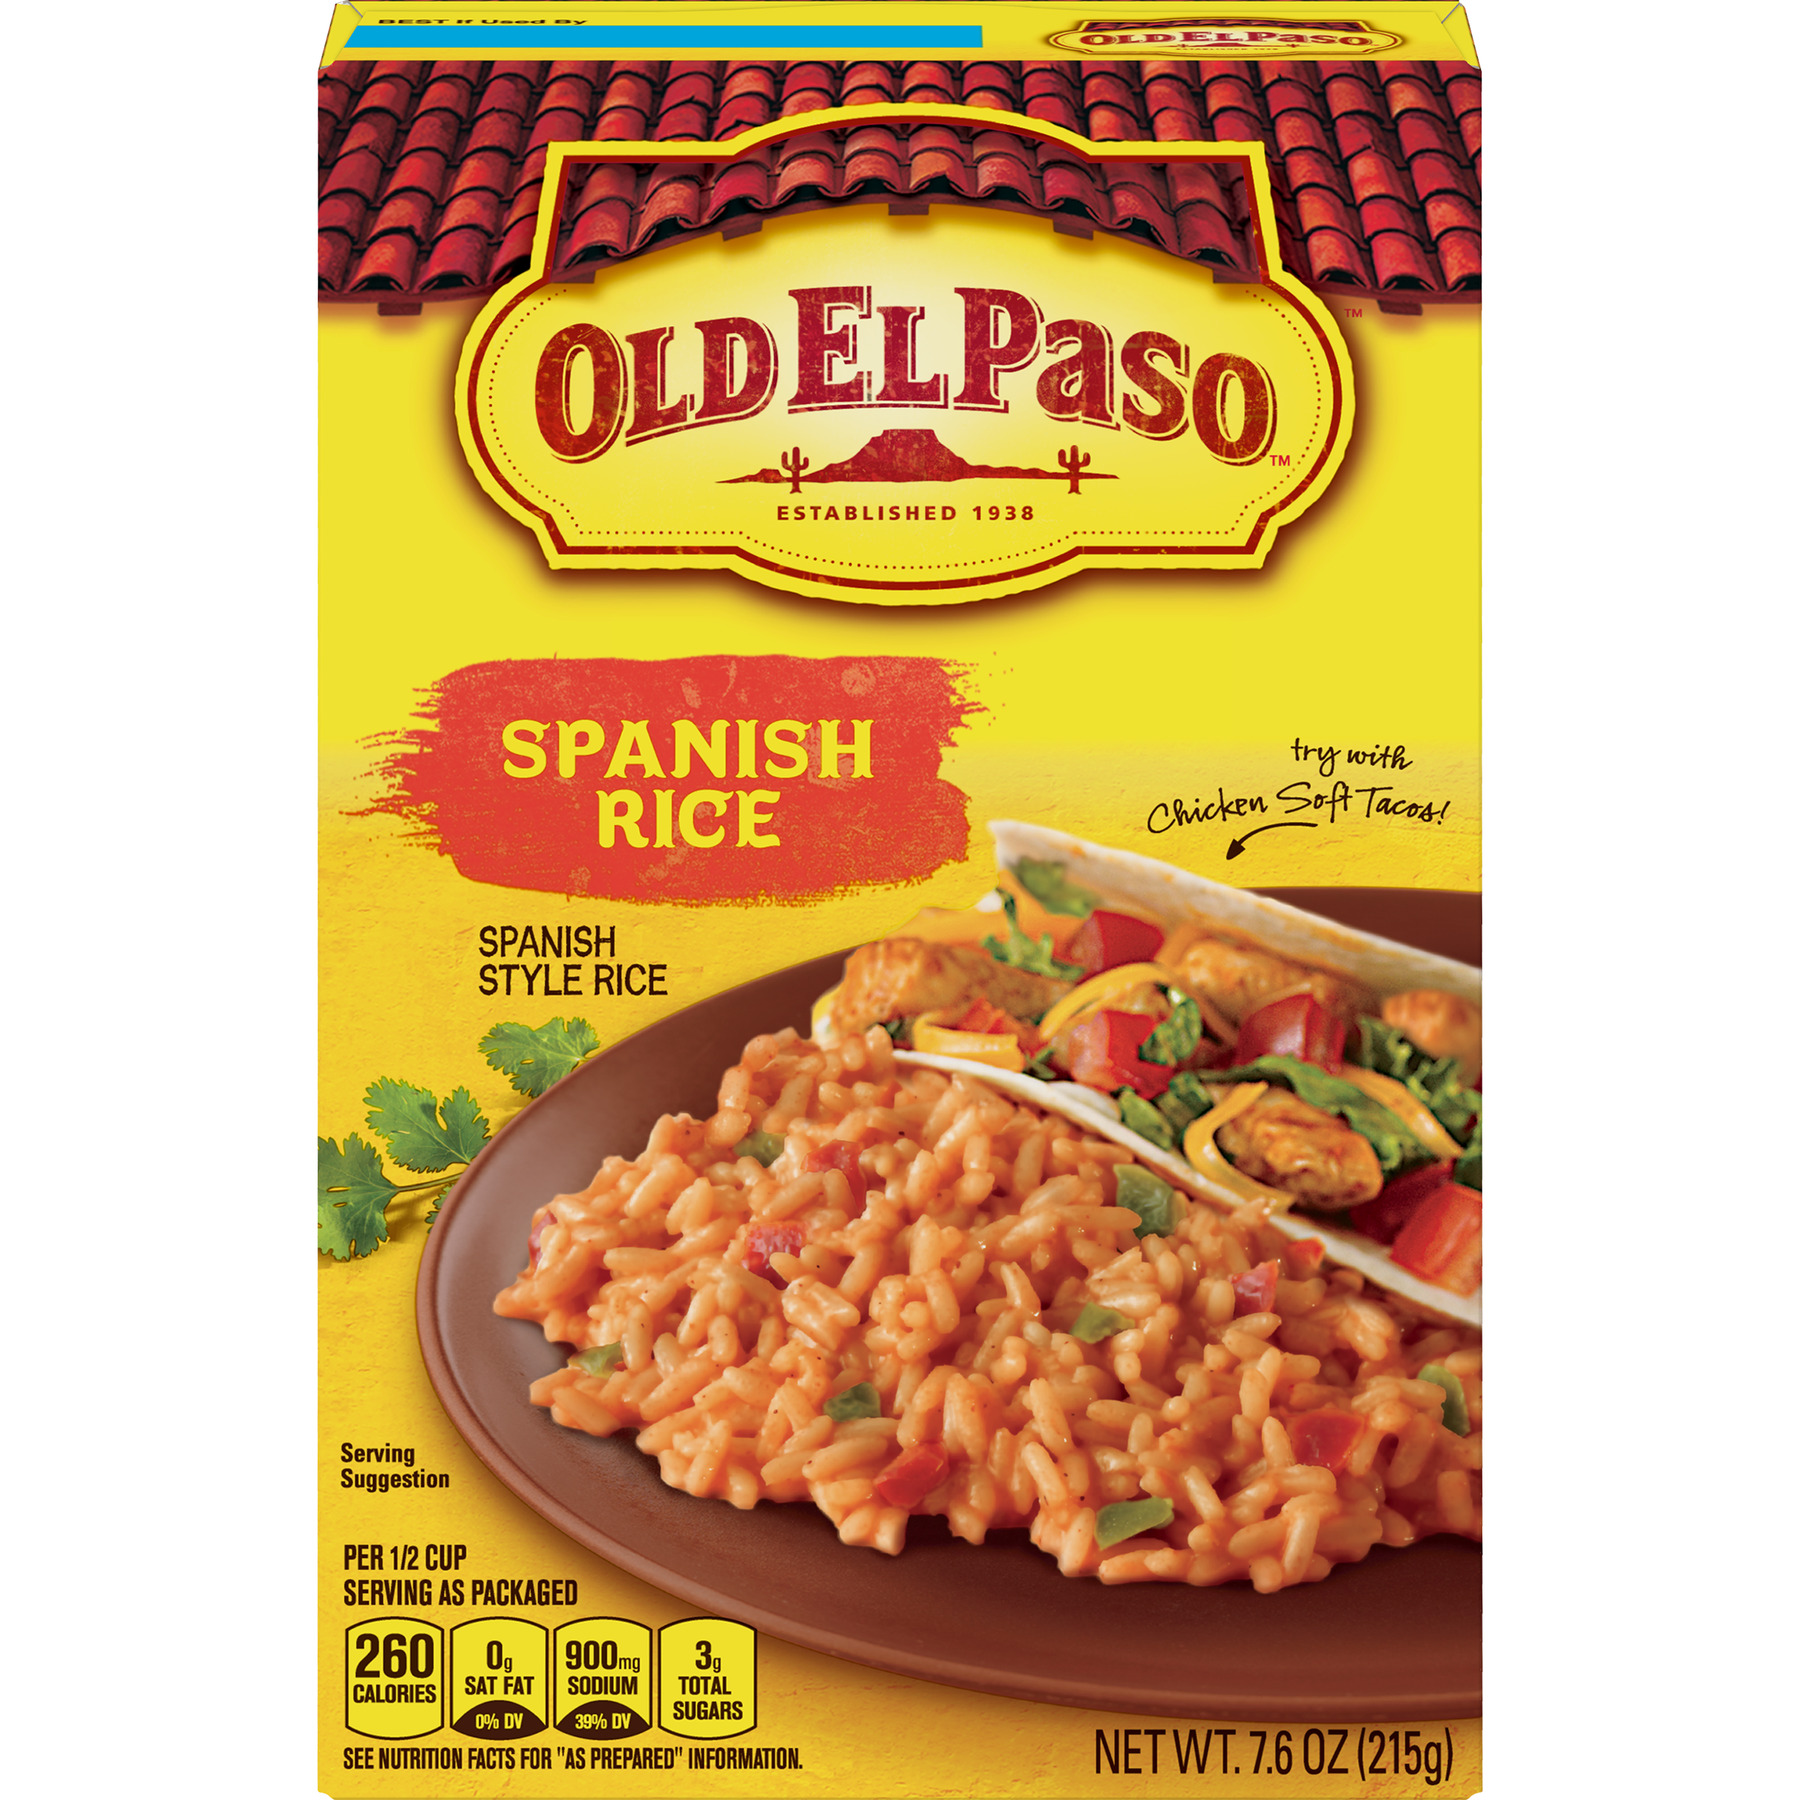 Old El Paso Spanish Rice Sides, 7.6 oz Box